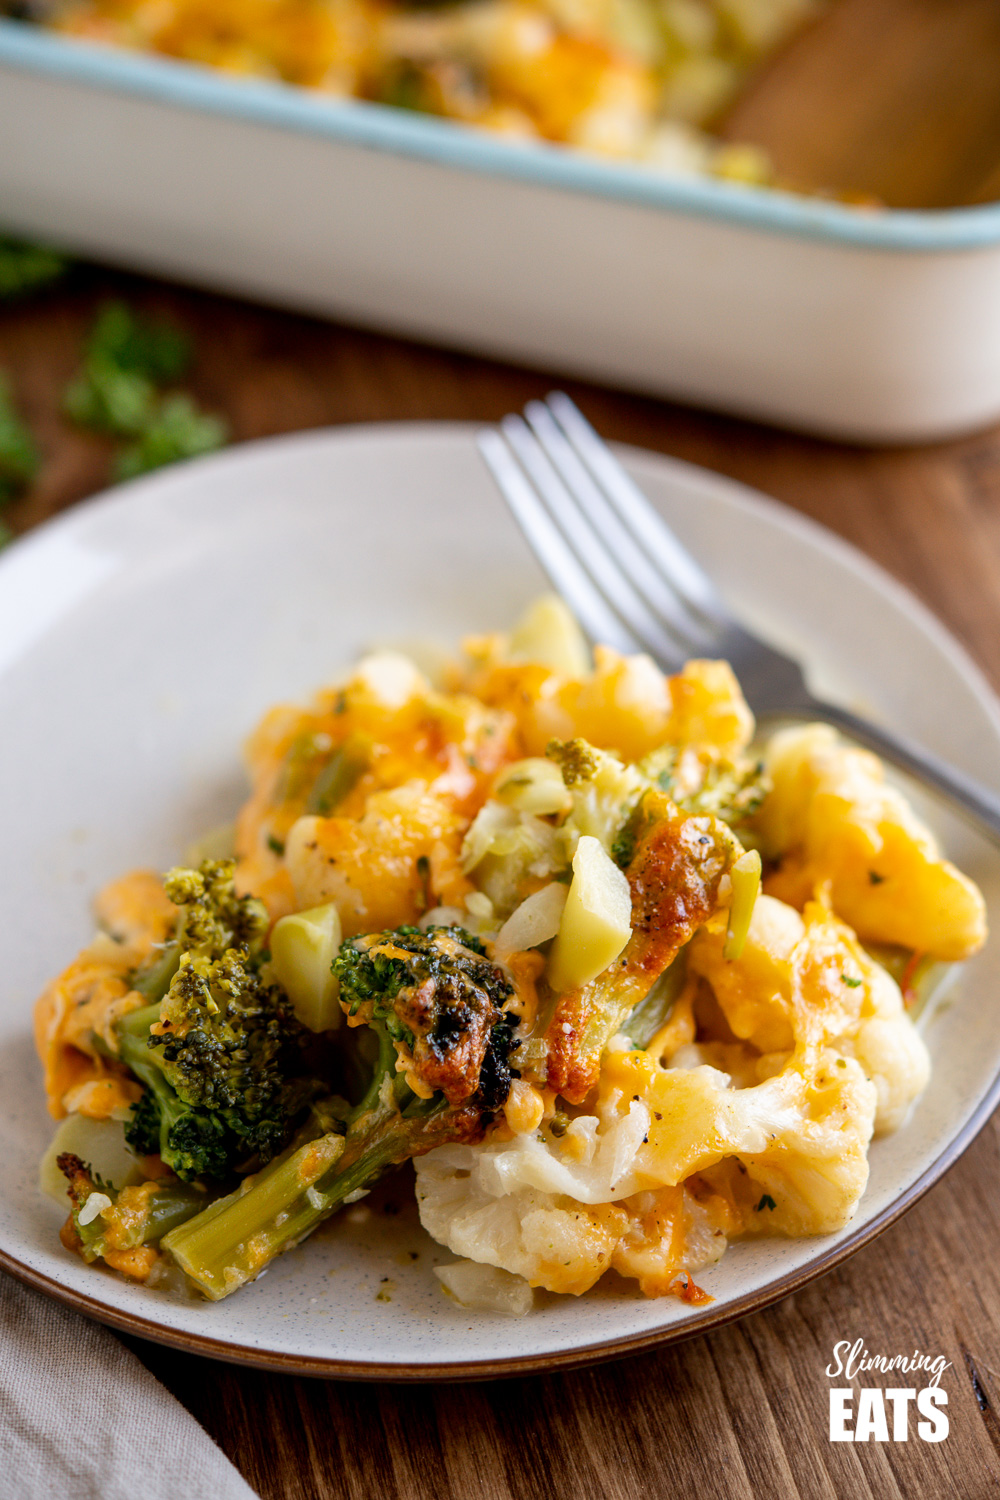 serving of Creamy Cheesy Vegetable Bake on cream coloured plate with brown rim